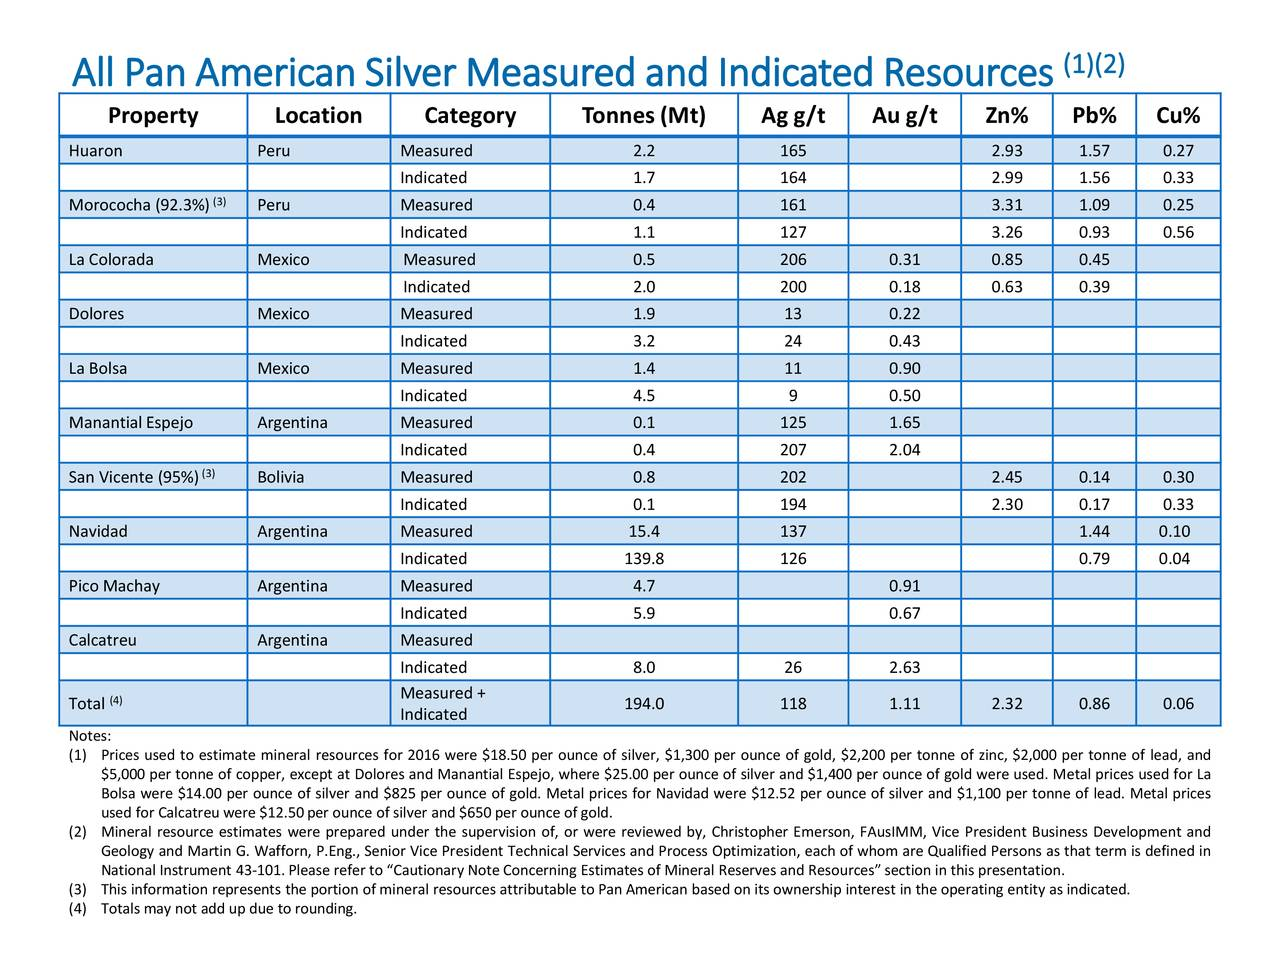 Pan American Silver Corp. Stock - PAAS news, historical stock charts, analyst ratings, financials, and today's Pan American Silver Corp. stock price.